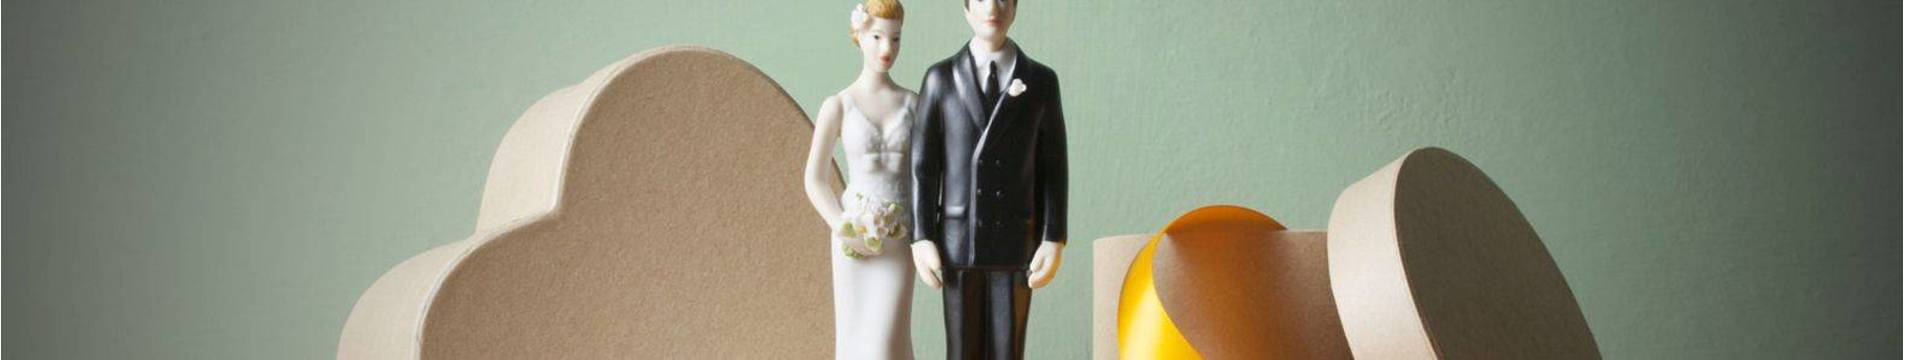 wedding-gift-guide-gifts-the-bride-and-grooms-will-love.jpg